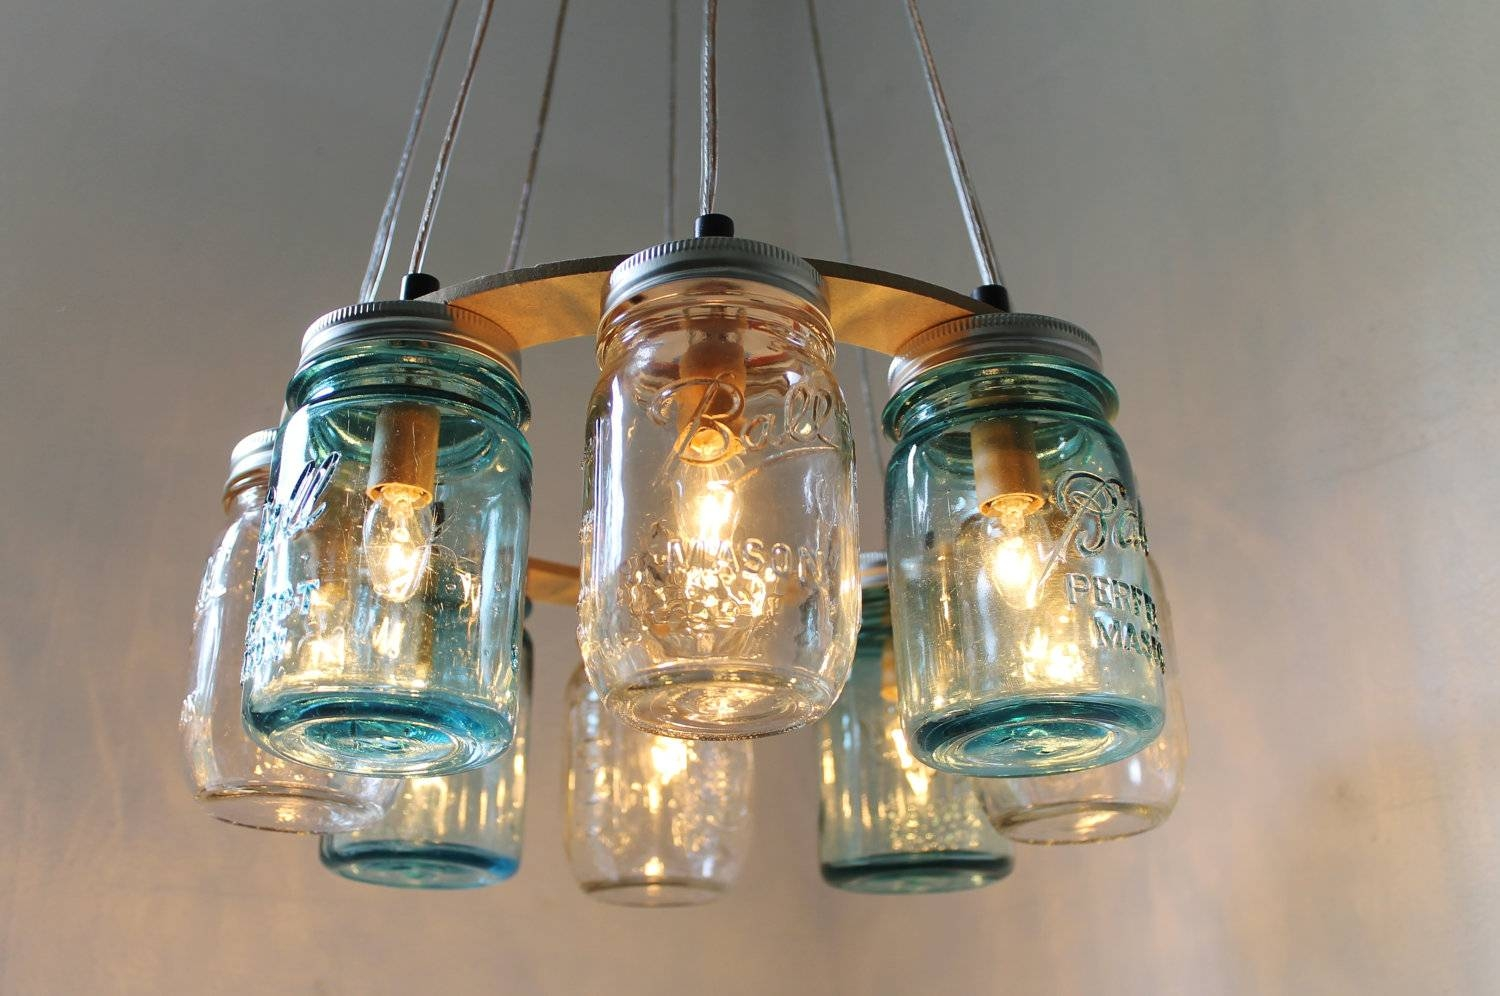 Mason Jar Chandelier Beach House Mason Jar Lighting Fixture with Blue Mason Jar Lights Fixtures (Image 8 of 15)